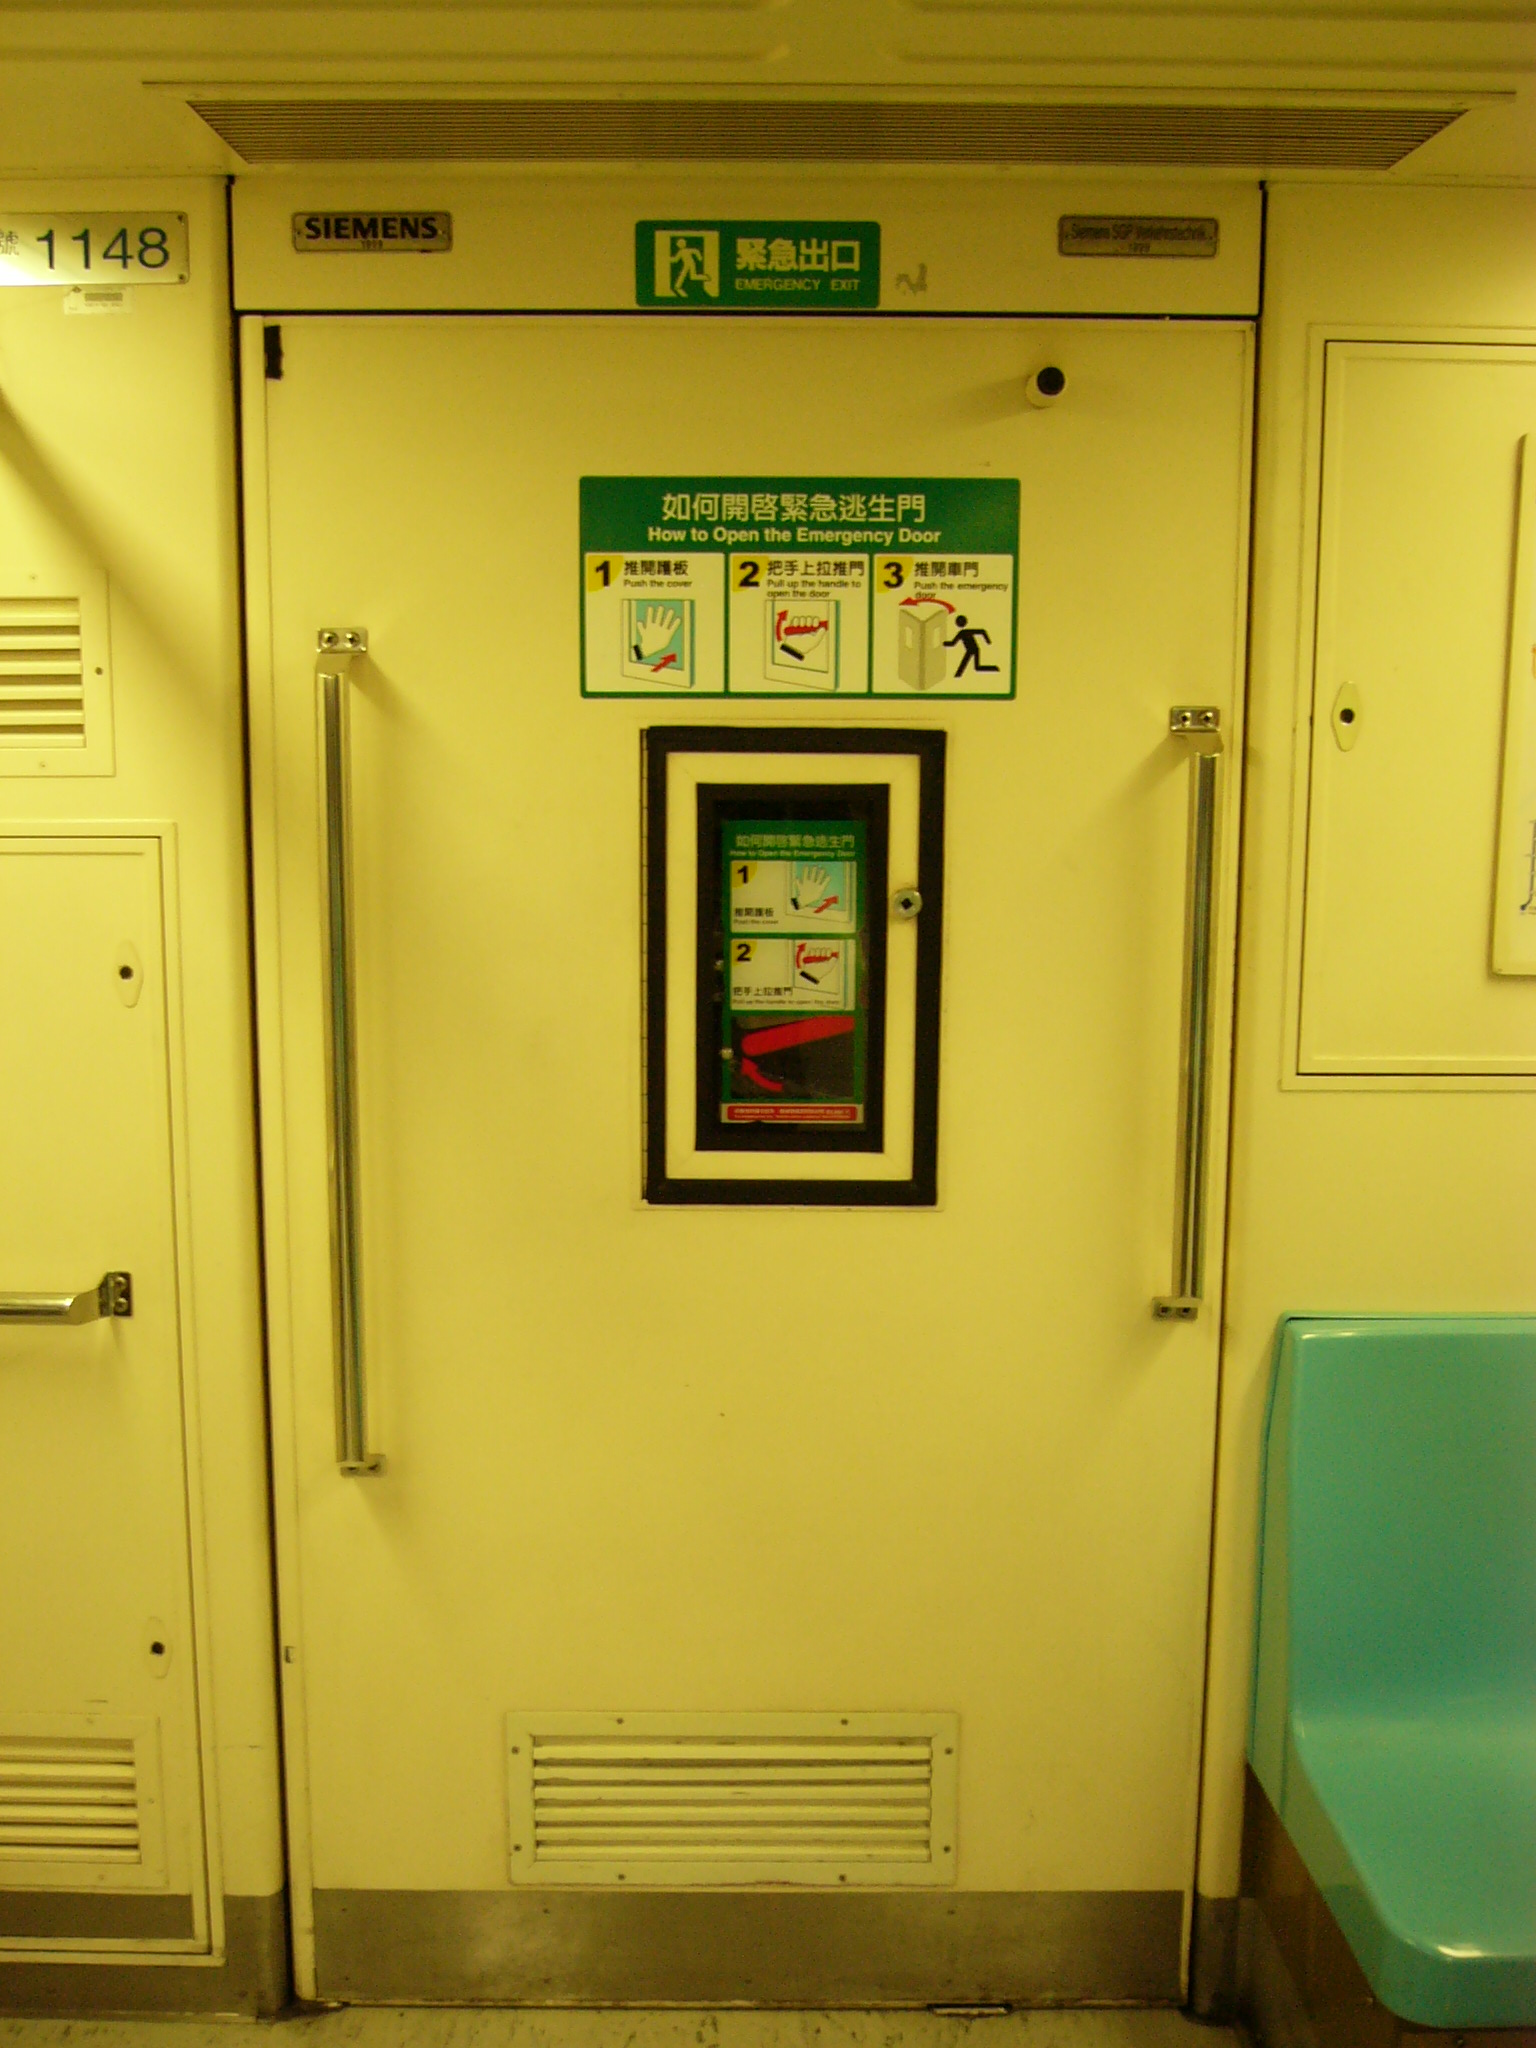 FileEmergency door in Taipei MRT 1148.jpg & File:Emergency door in Taipei MRT 1148.jpg - Wikimedia Commons